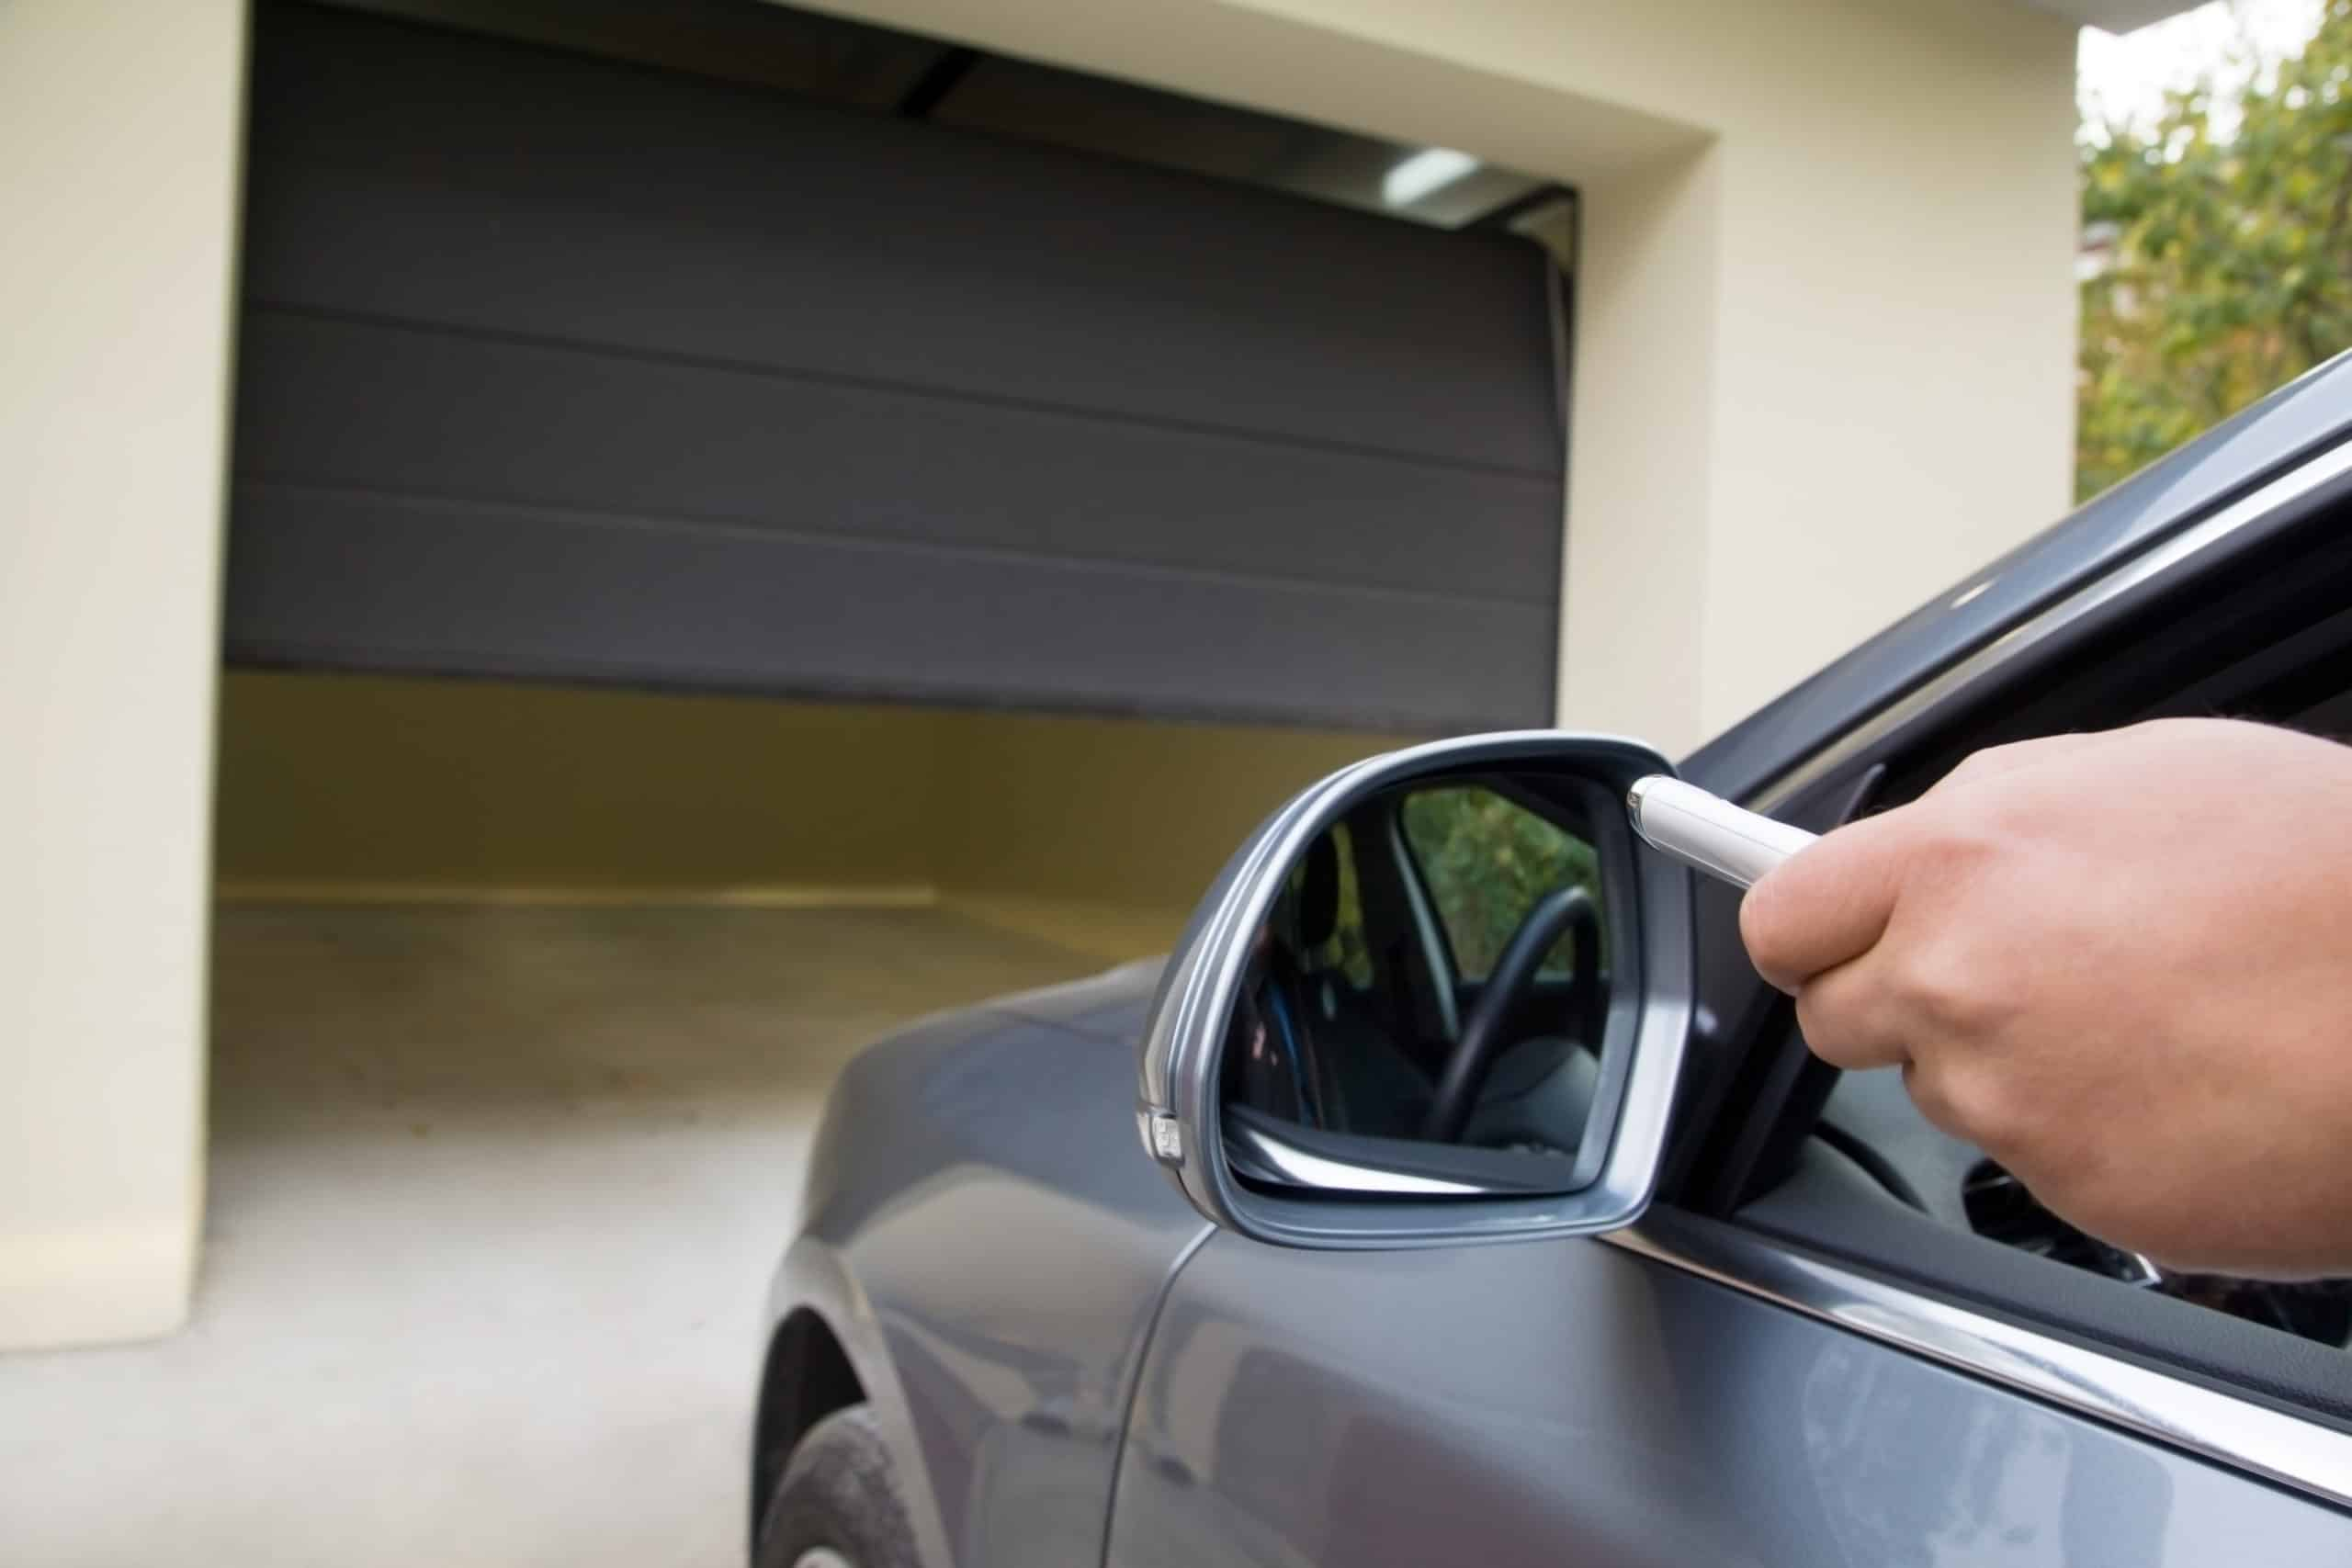 opening garage door with remote from car